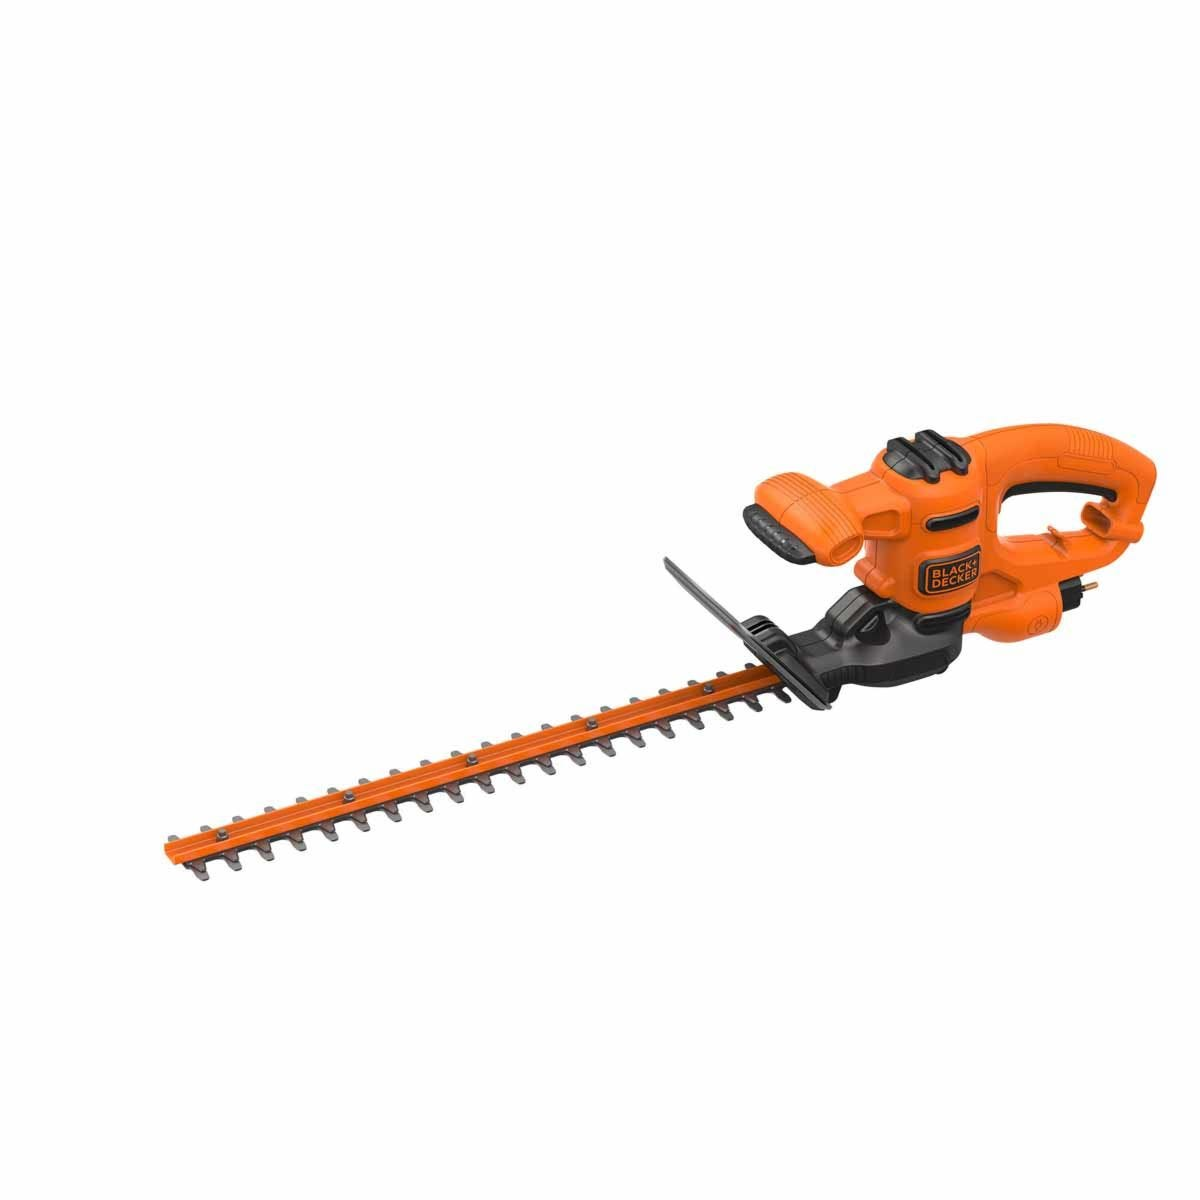 Black and Decker 420w Corded 45cm Hedge Trimmer